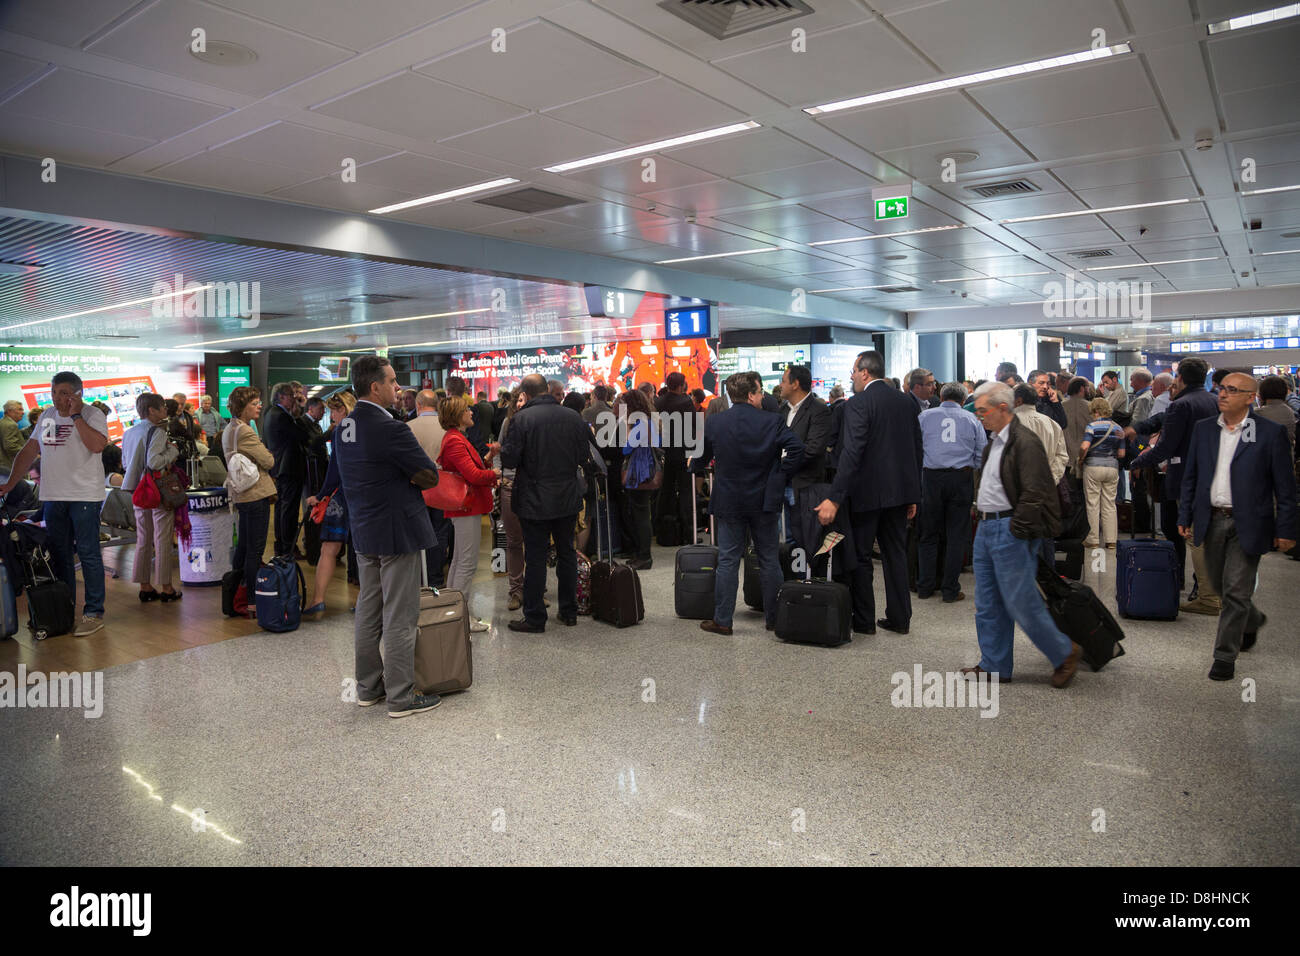 busy scene at Fiumicino Airport, Rome, Italy - Stock Image